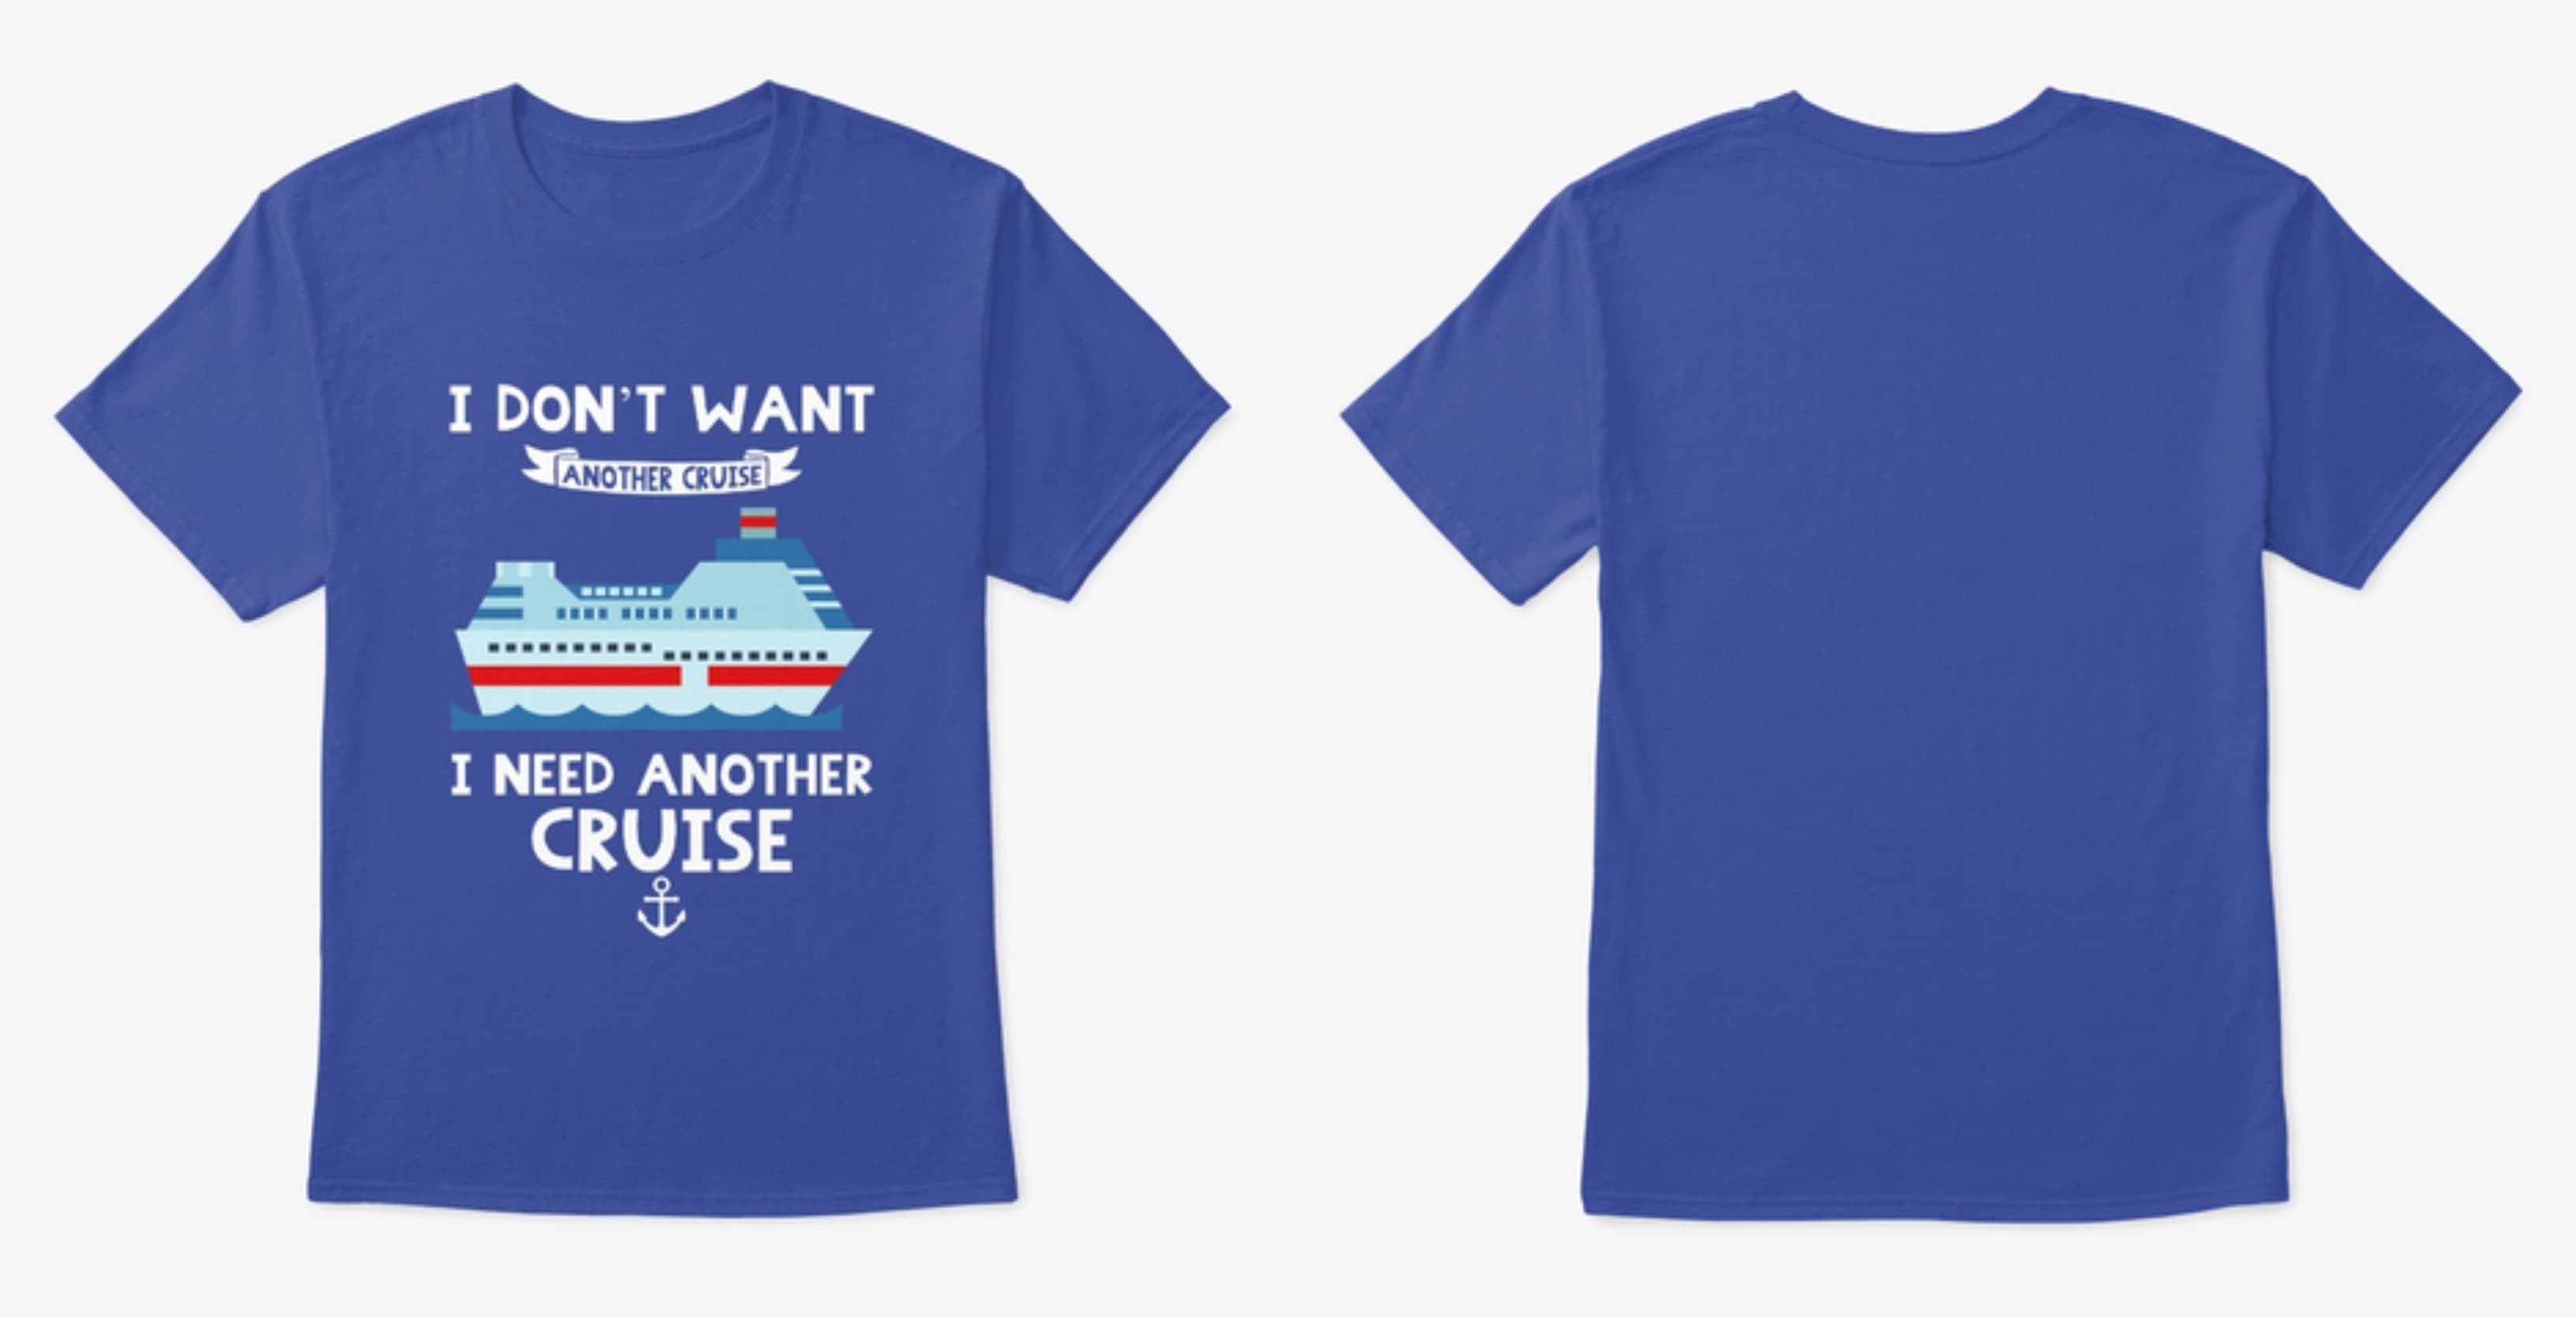 Funny Cruise Tshirt. I don't want another cruise, I need another cruise.